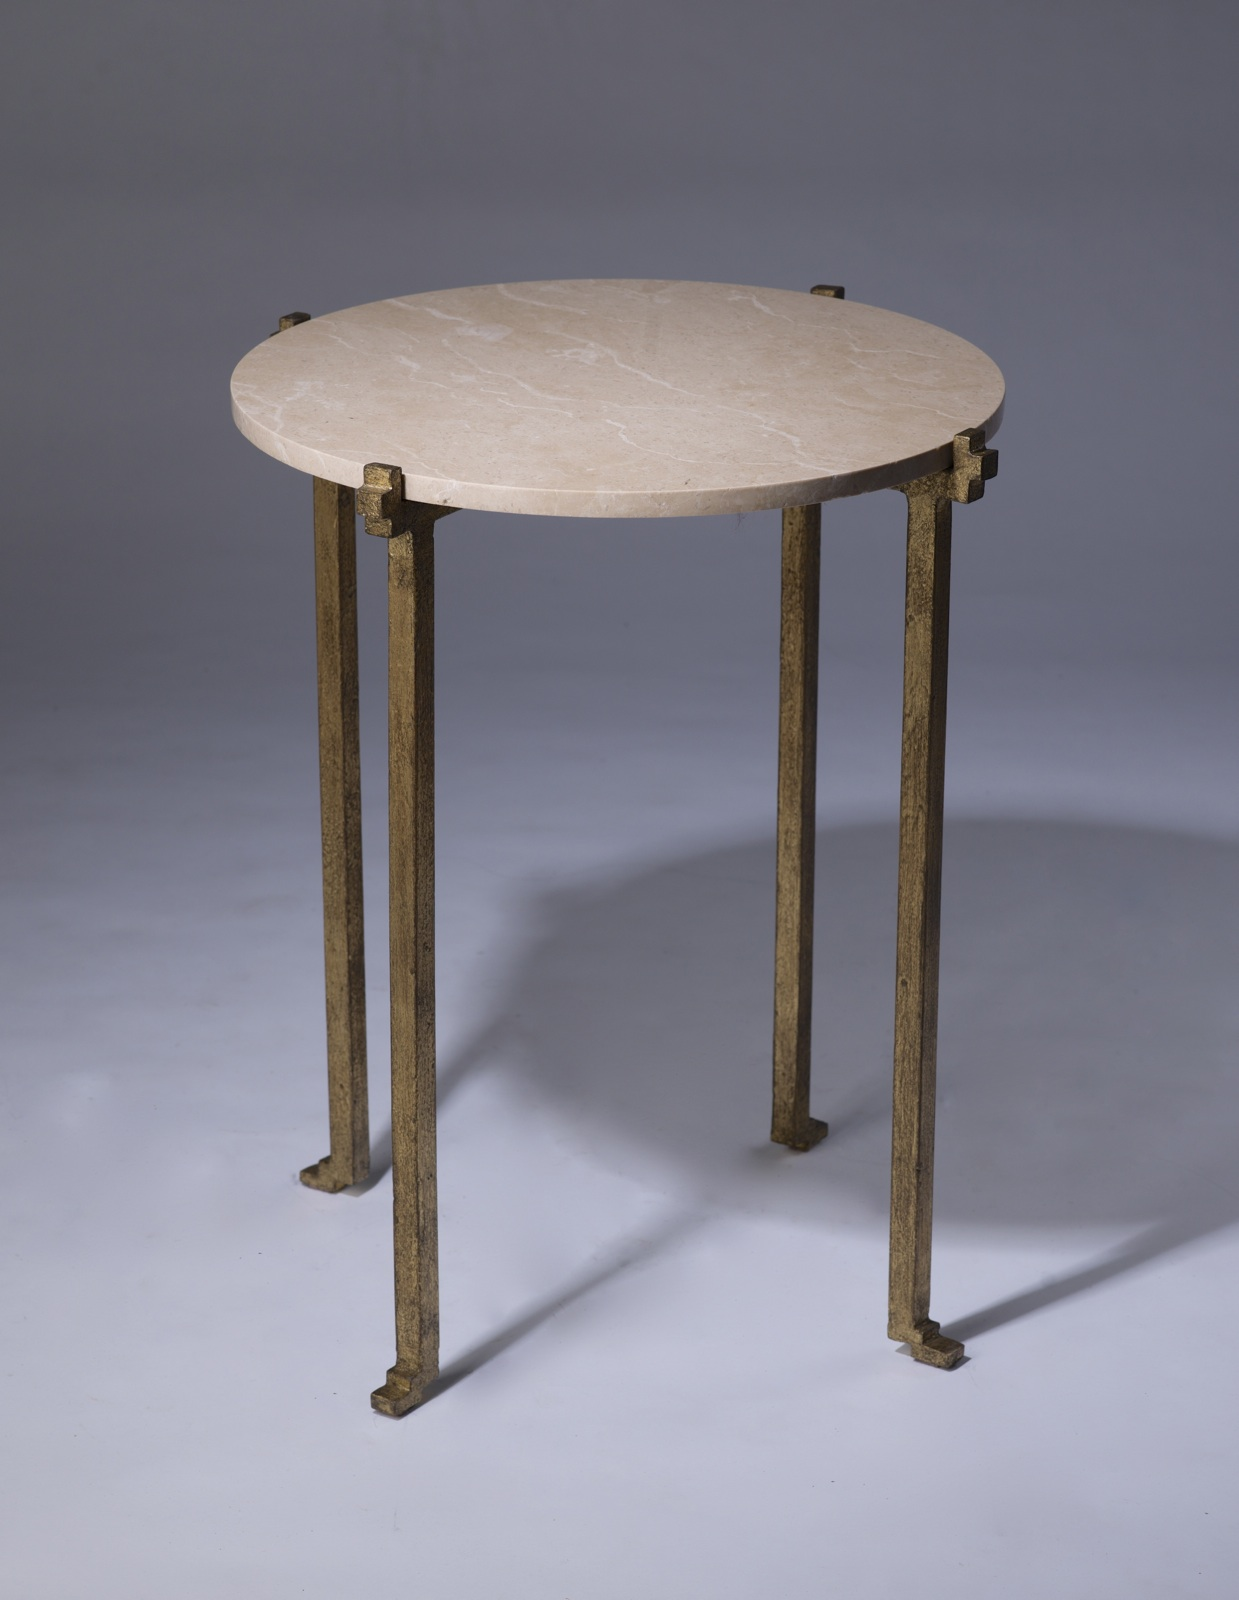 Wrought Iron U0027katieu0027 Side Table With Marble Top In Distressed Gold Leaf  Finish